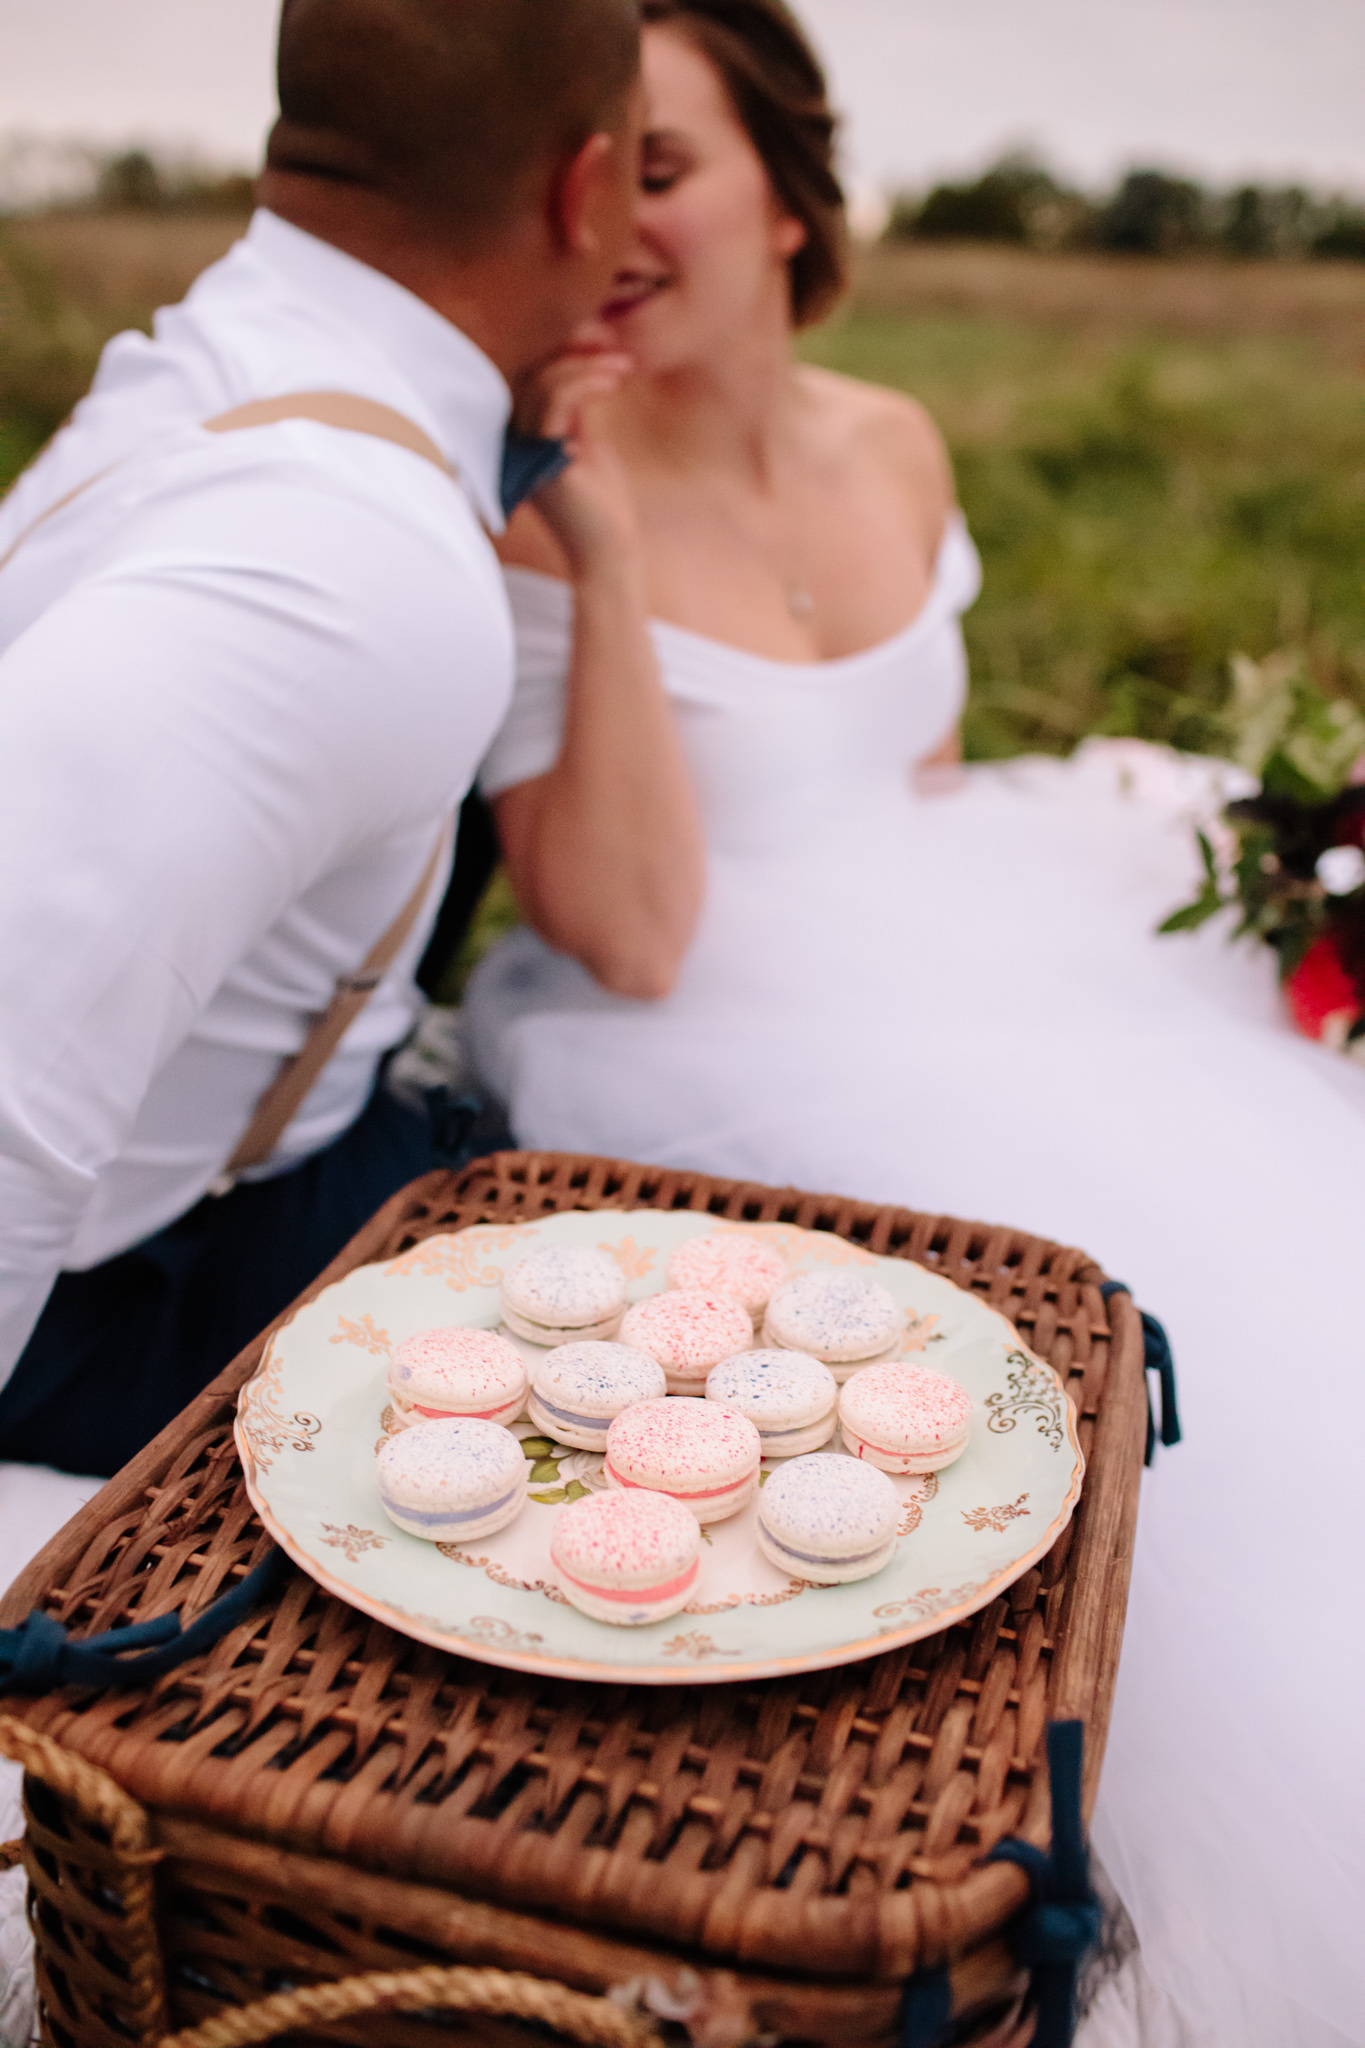 macaroons on an antique plate for picnic